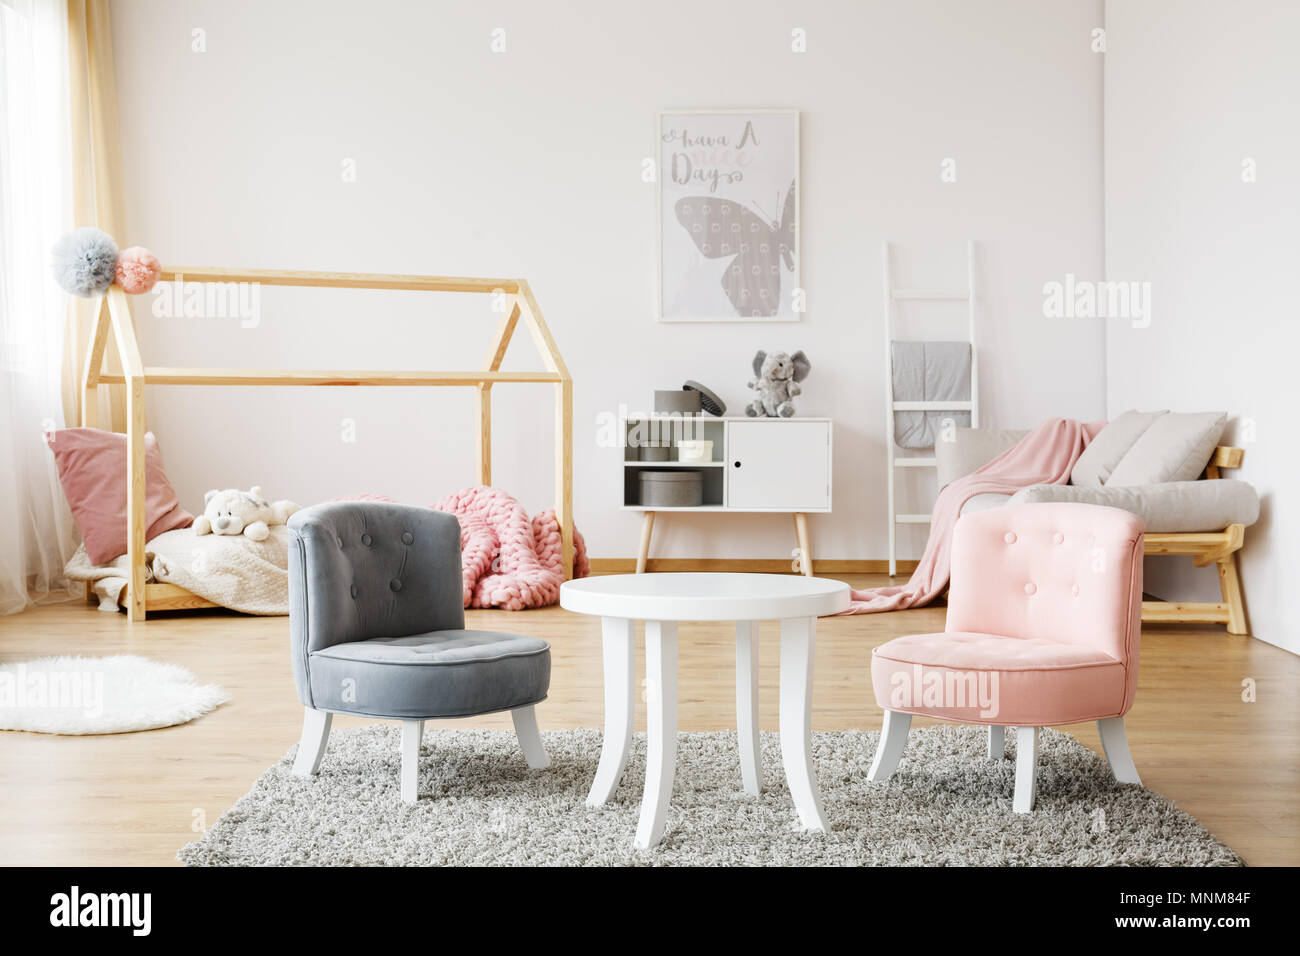 Etonnant Grey And Pink Small Cute Chairs Standing On Soft Carpet In Cozy Baby Room